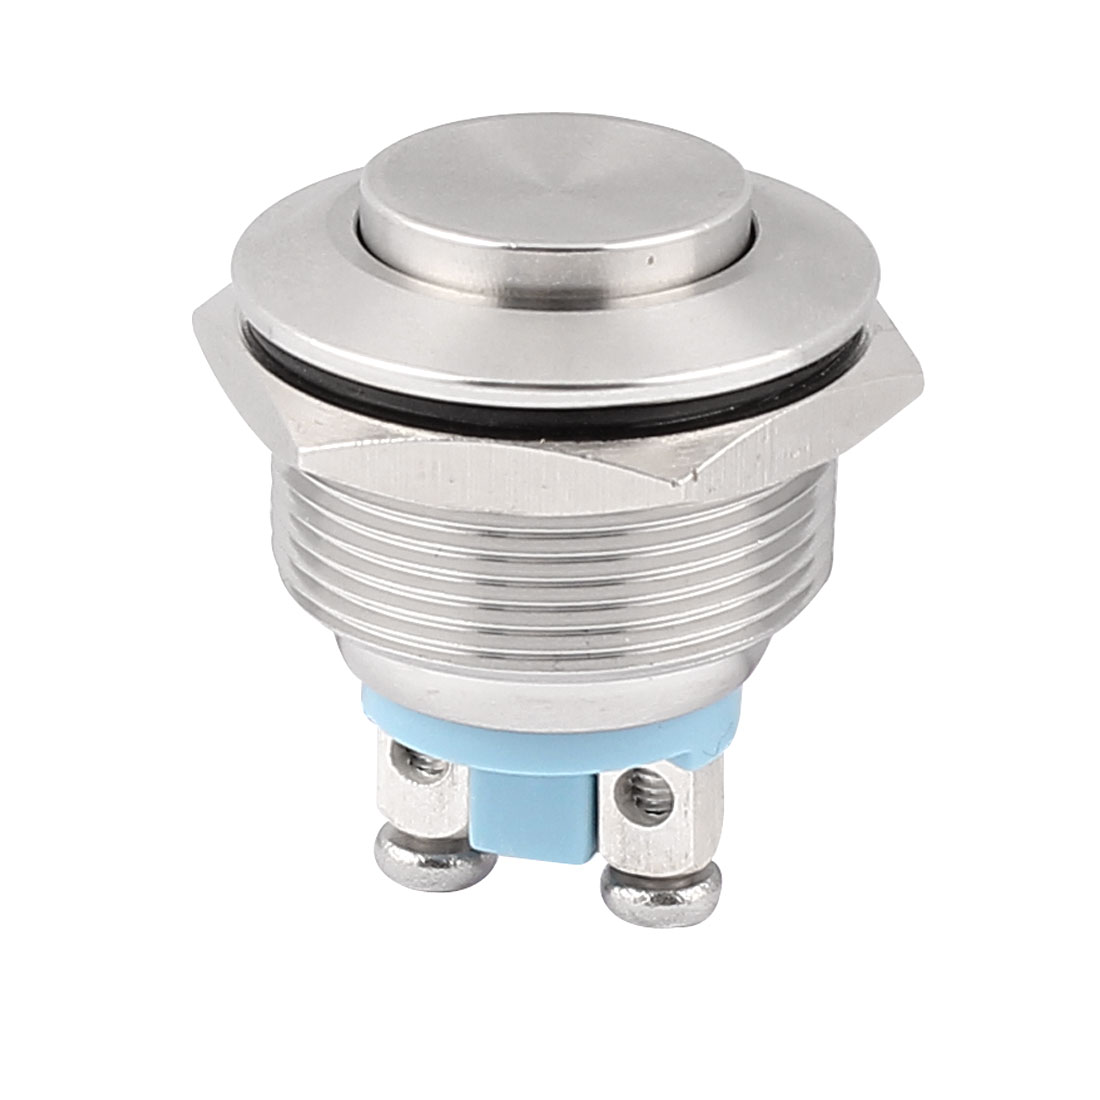 22mm Thread Dia SPST High Head Momentary Push Button Switch